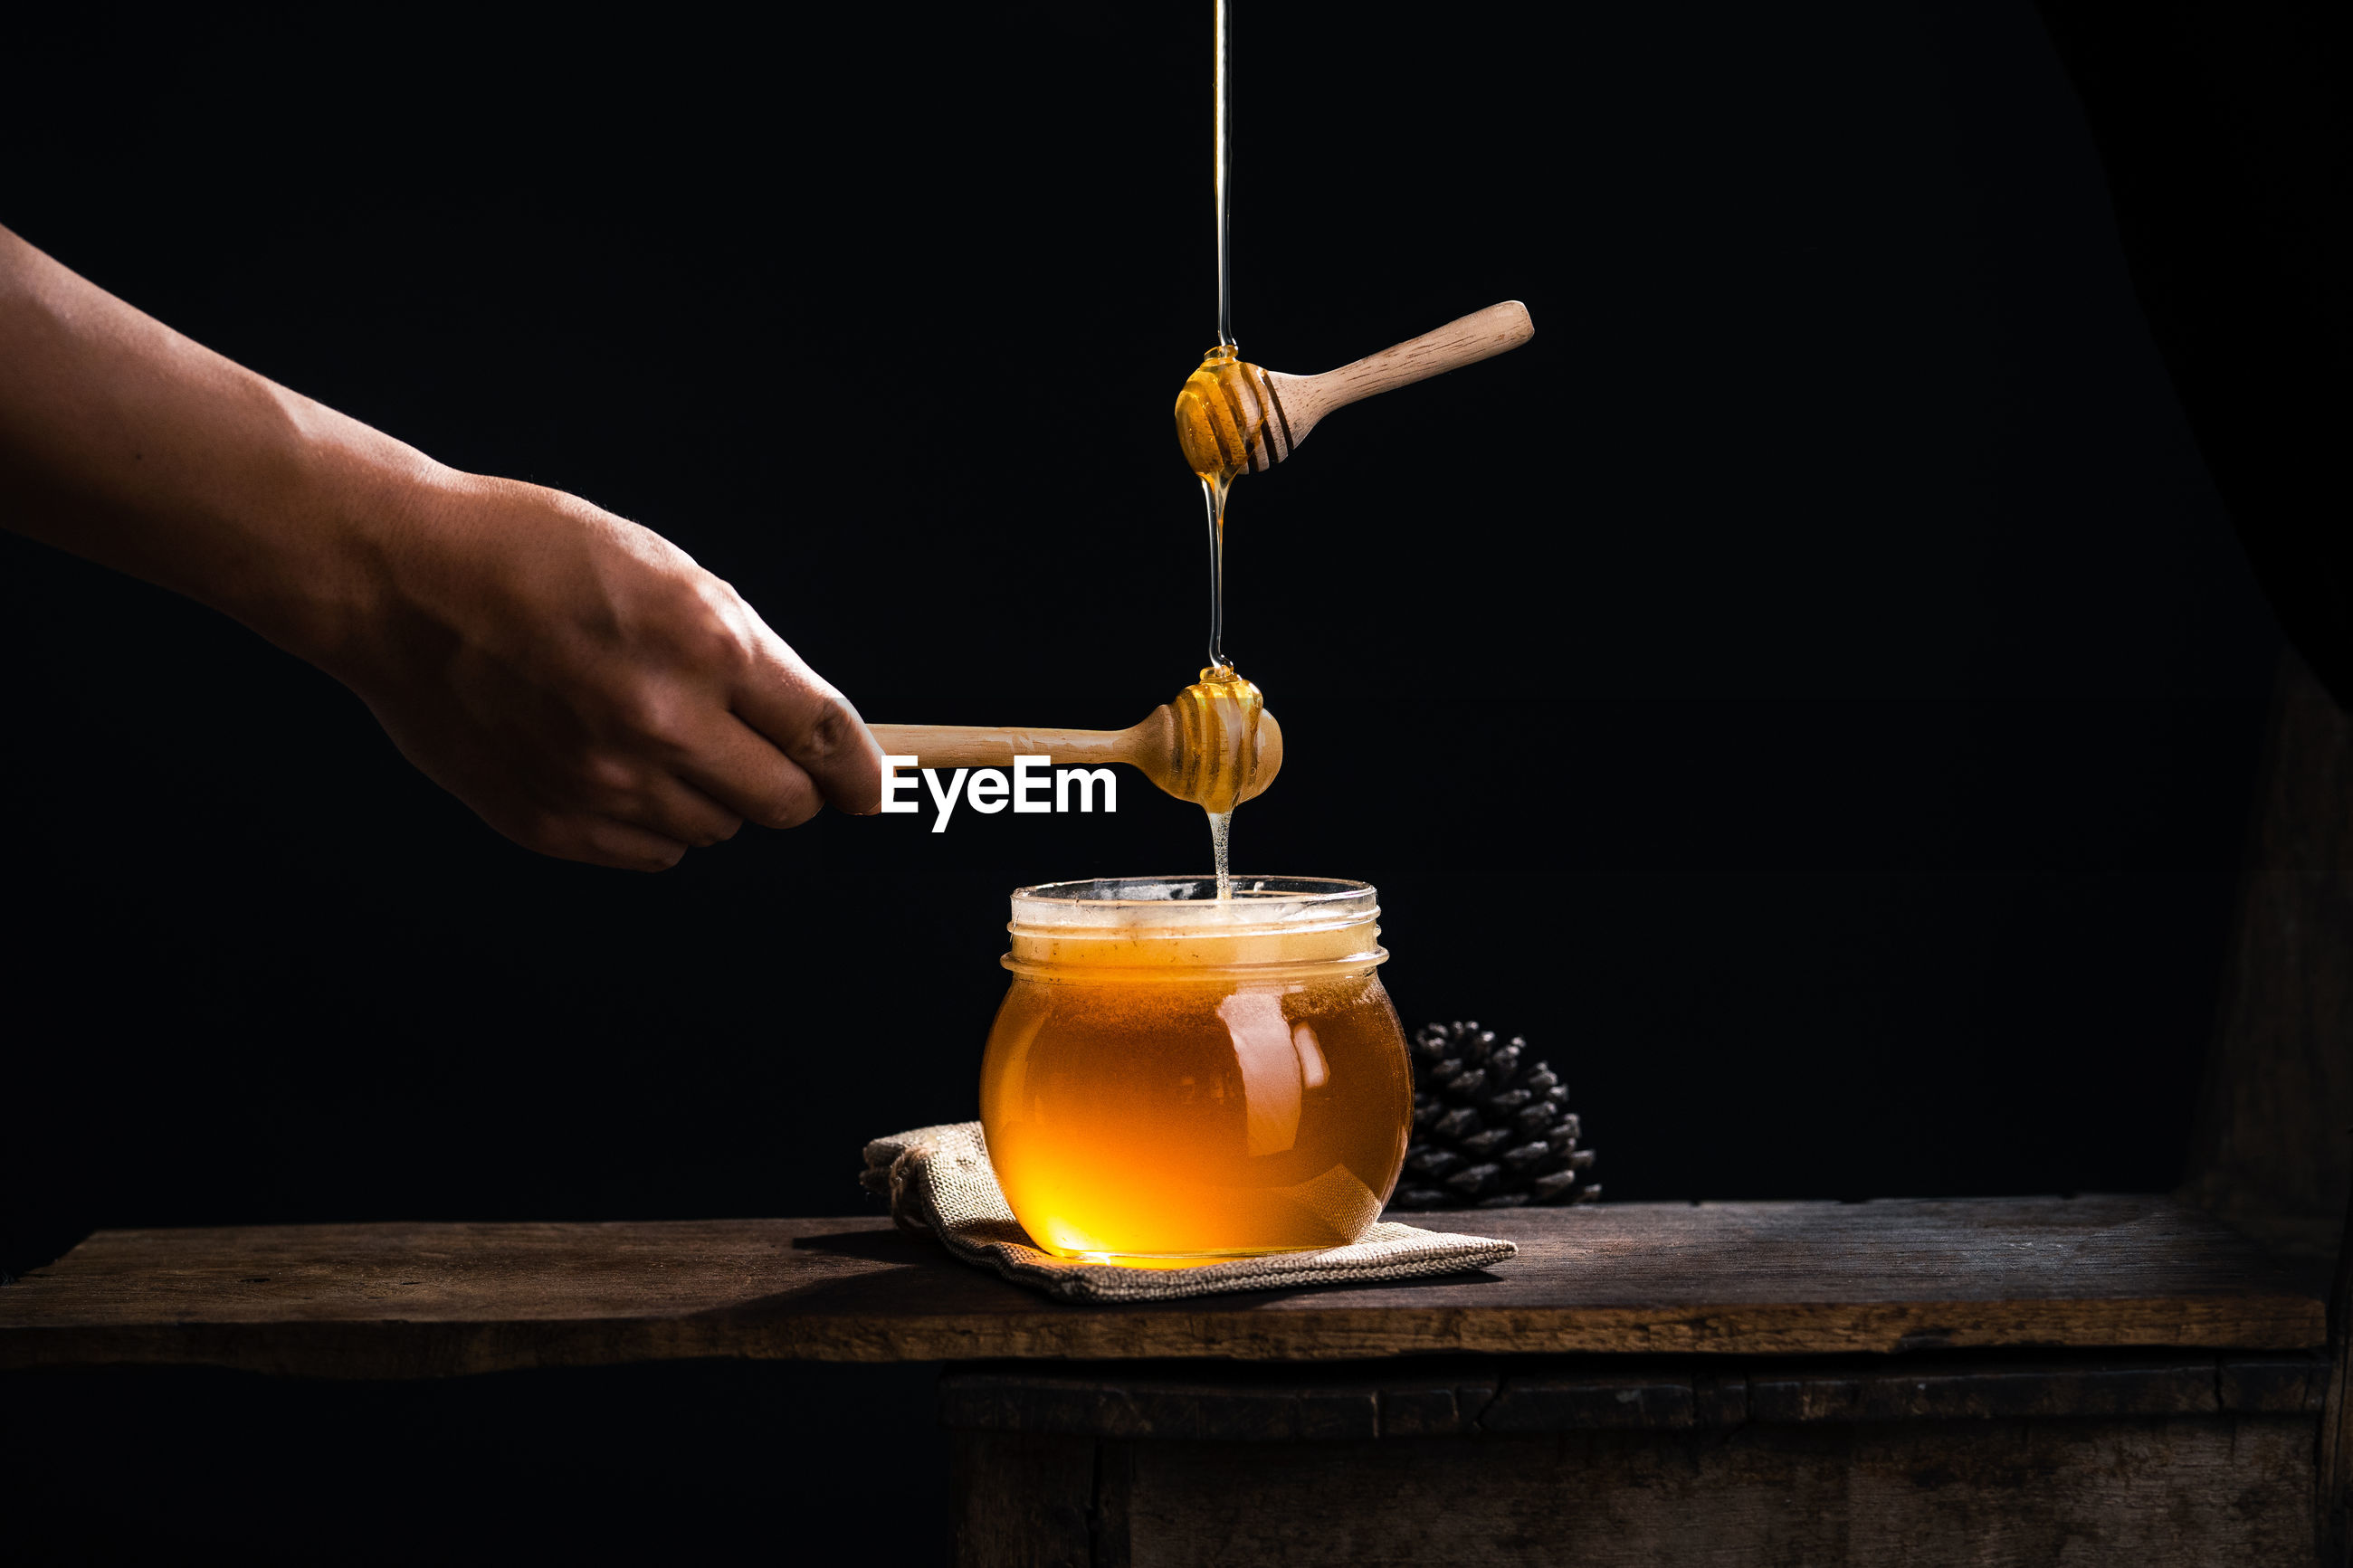 Hand holding drink on table against black background